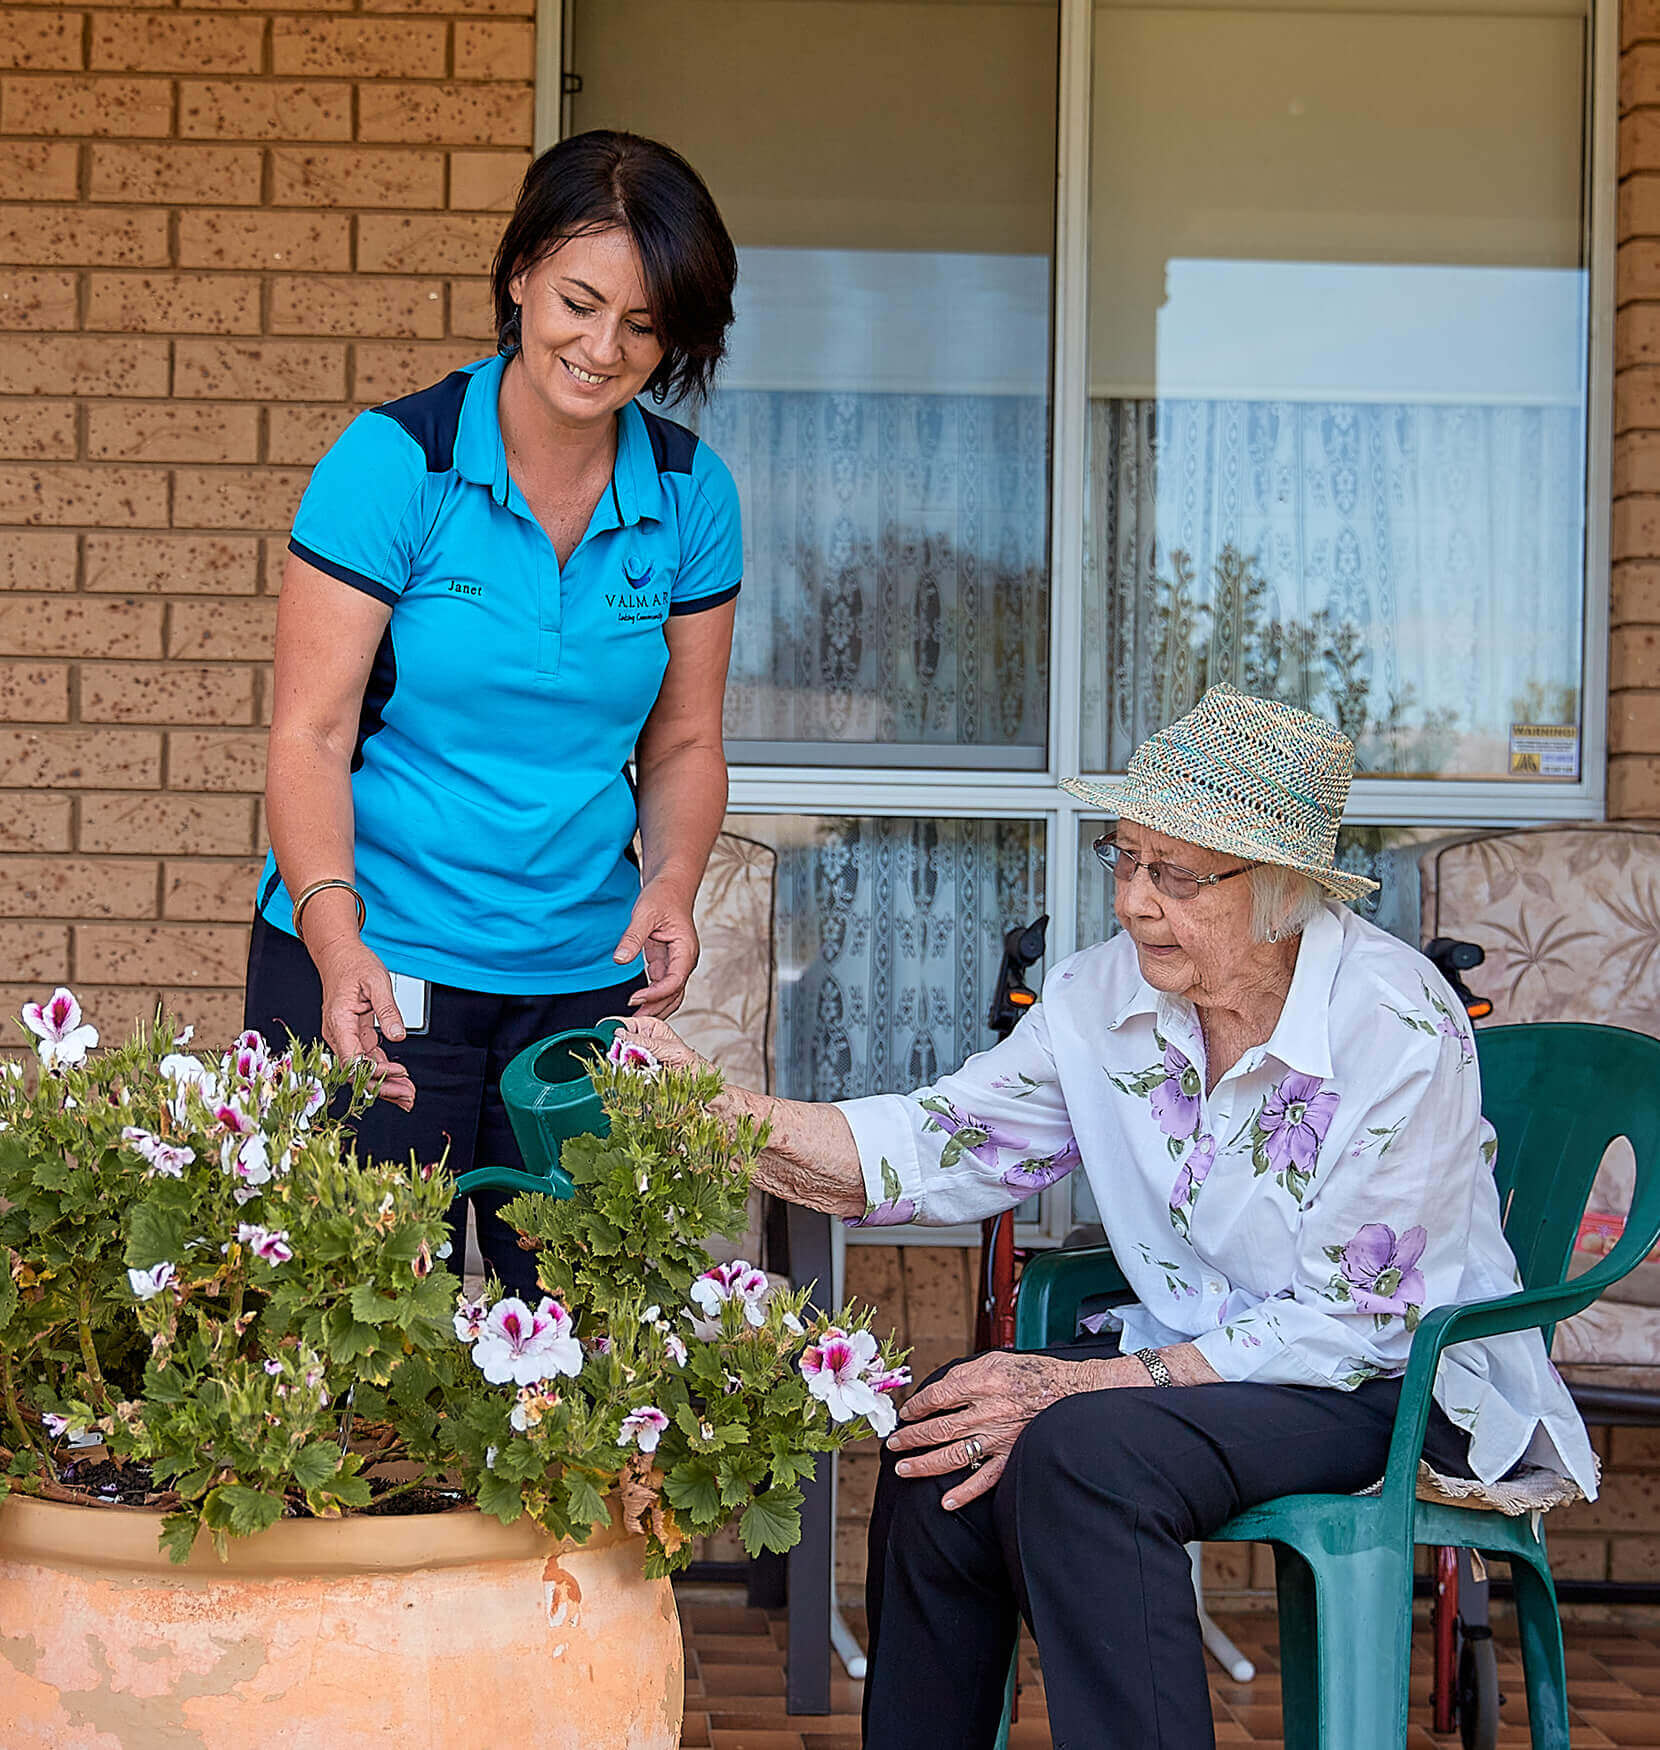 An elderly woman sitting on a green garden chair watering some purple flowers. A younger woman in a bright blue Valmar Community Aged Care uniform is smiling while overseeing the watering.